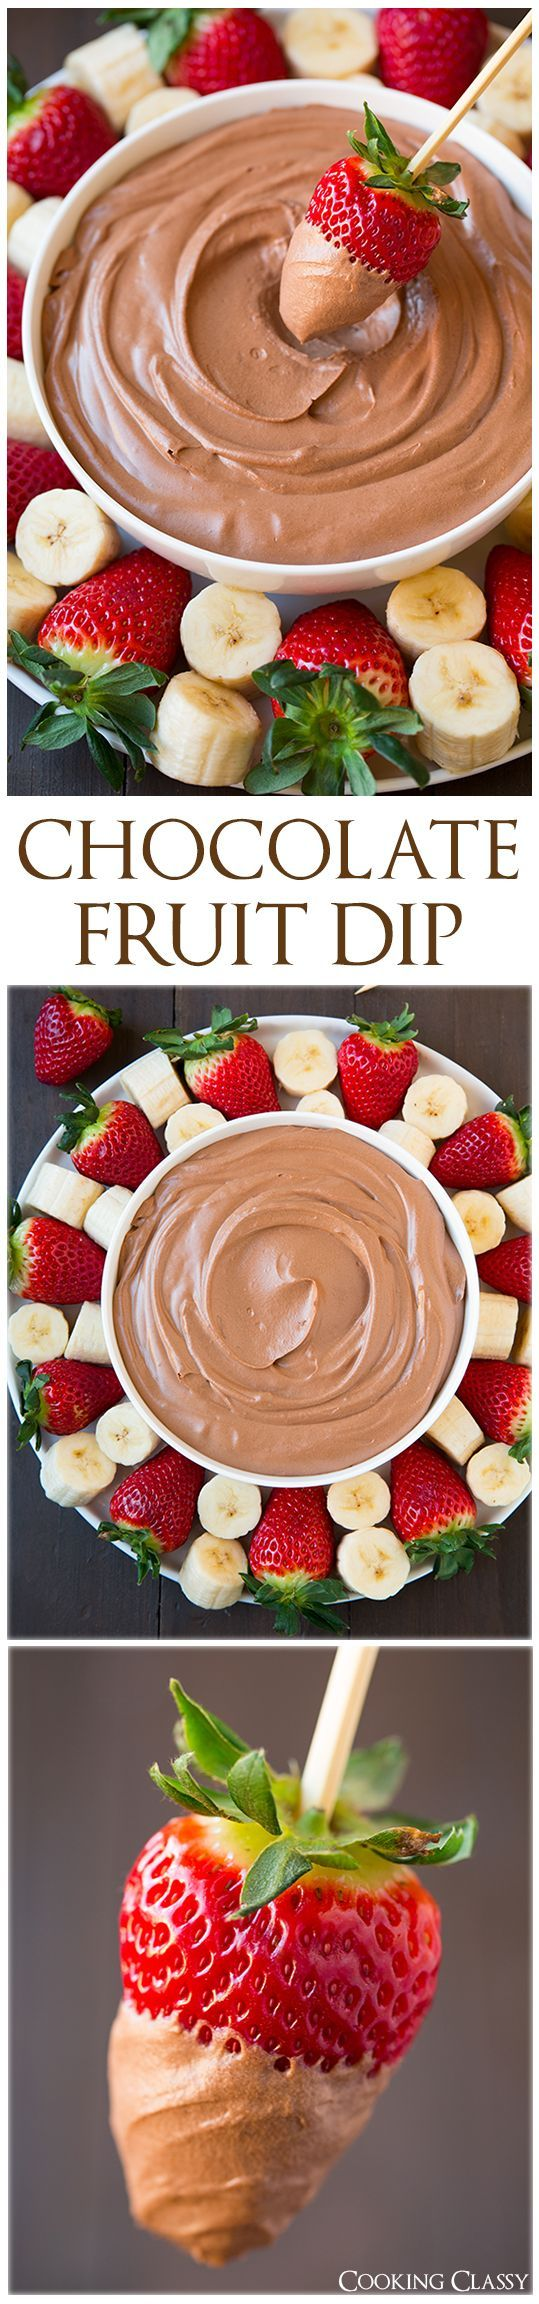 Chocolate Fruit Dip - is perfectly light and creamy and deliciously chocolatey. Easy to make too! Loved it!